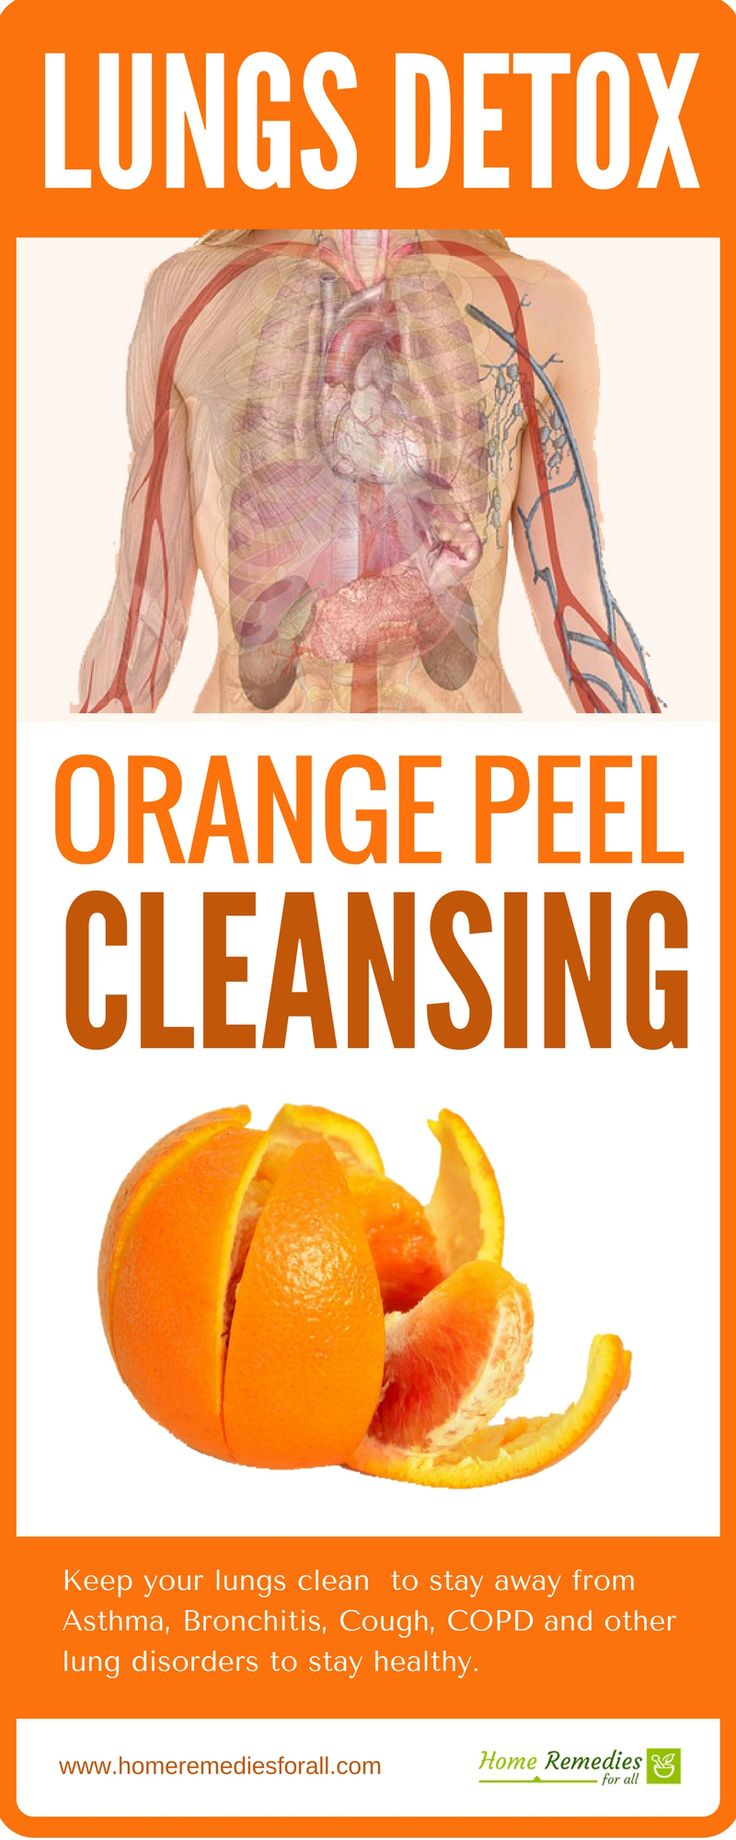 Use orange Peel detox for your lungs cleansing.  Whether you are smoker or not this will help to flush toxins from your lungs.